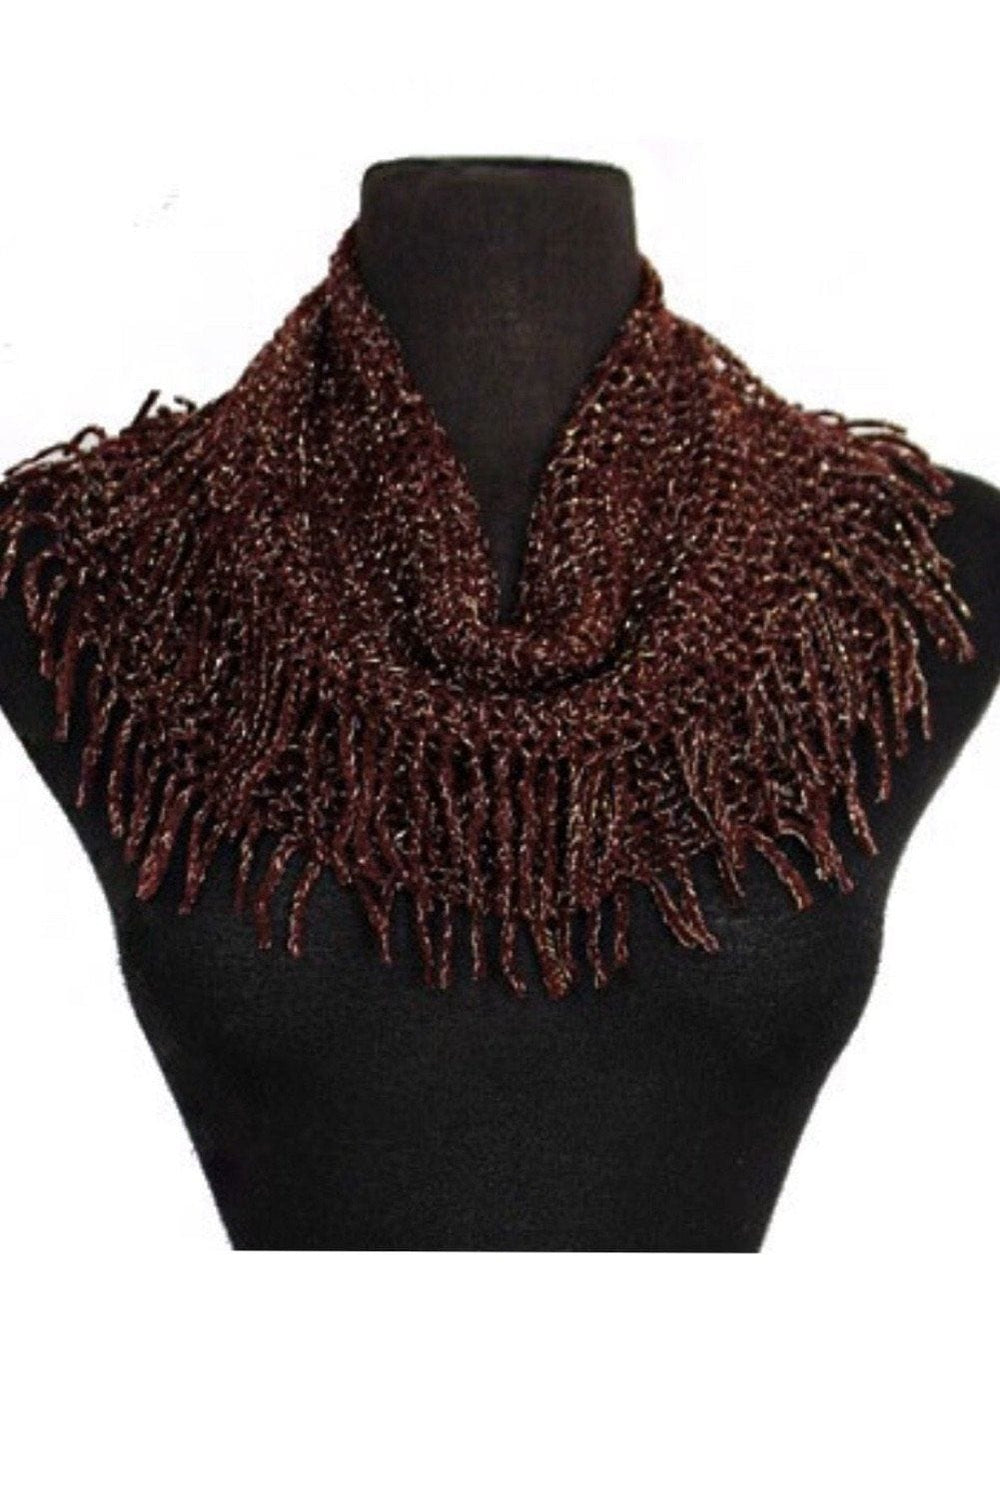 Fringe Infinity Scarf- Glitter door buster Vibe Clothing Company